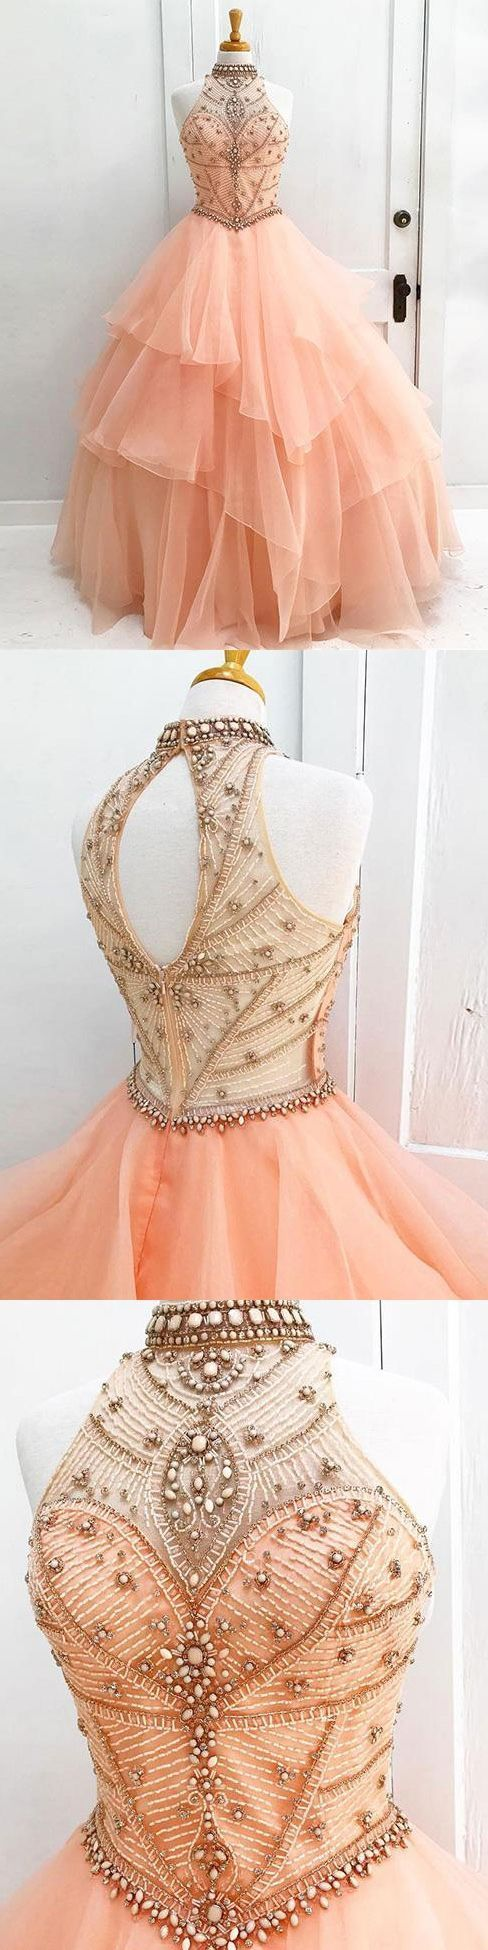 Awesome Ball Gown Halter High Neck Beaded Bodice Organza Quinceanera Dresses,BD455855 #f…